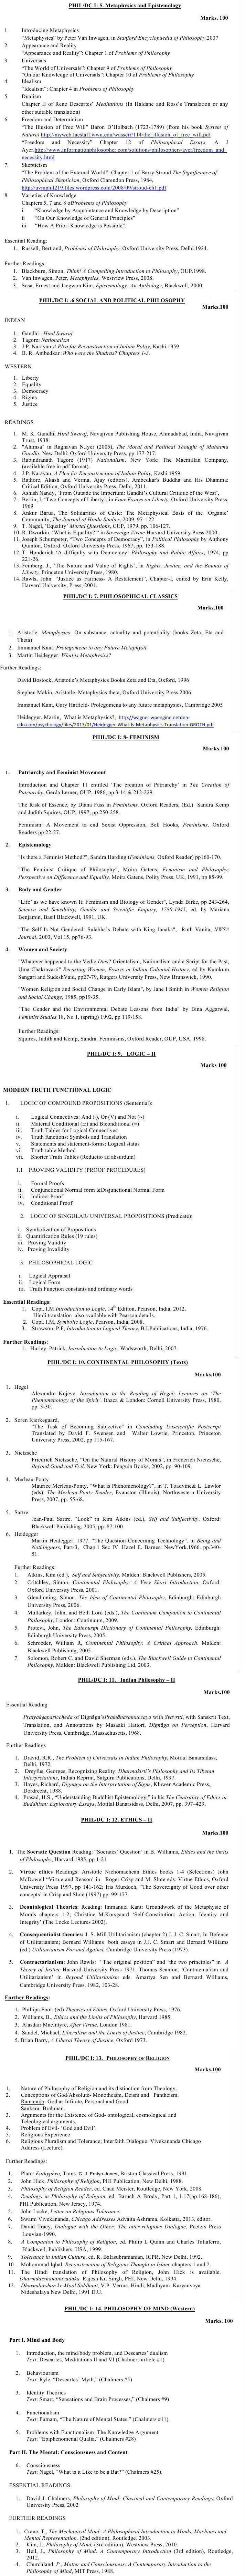 DU DC I, DC II and Applied Course Syllabus - Philosophy